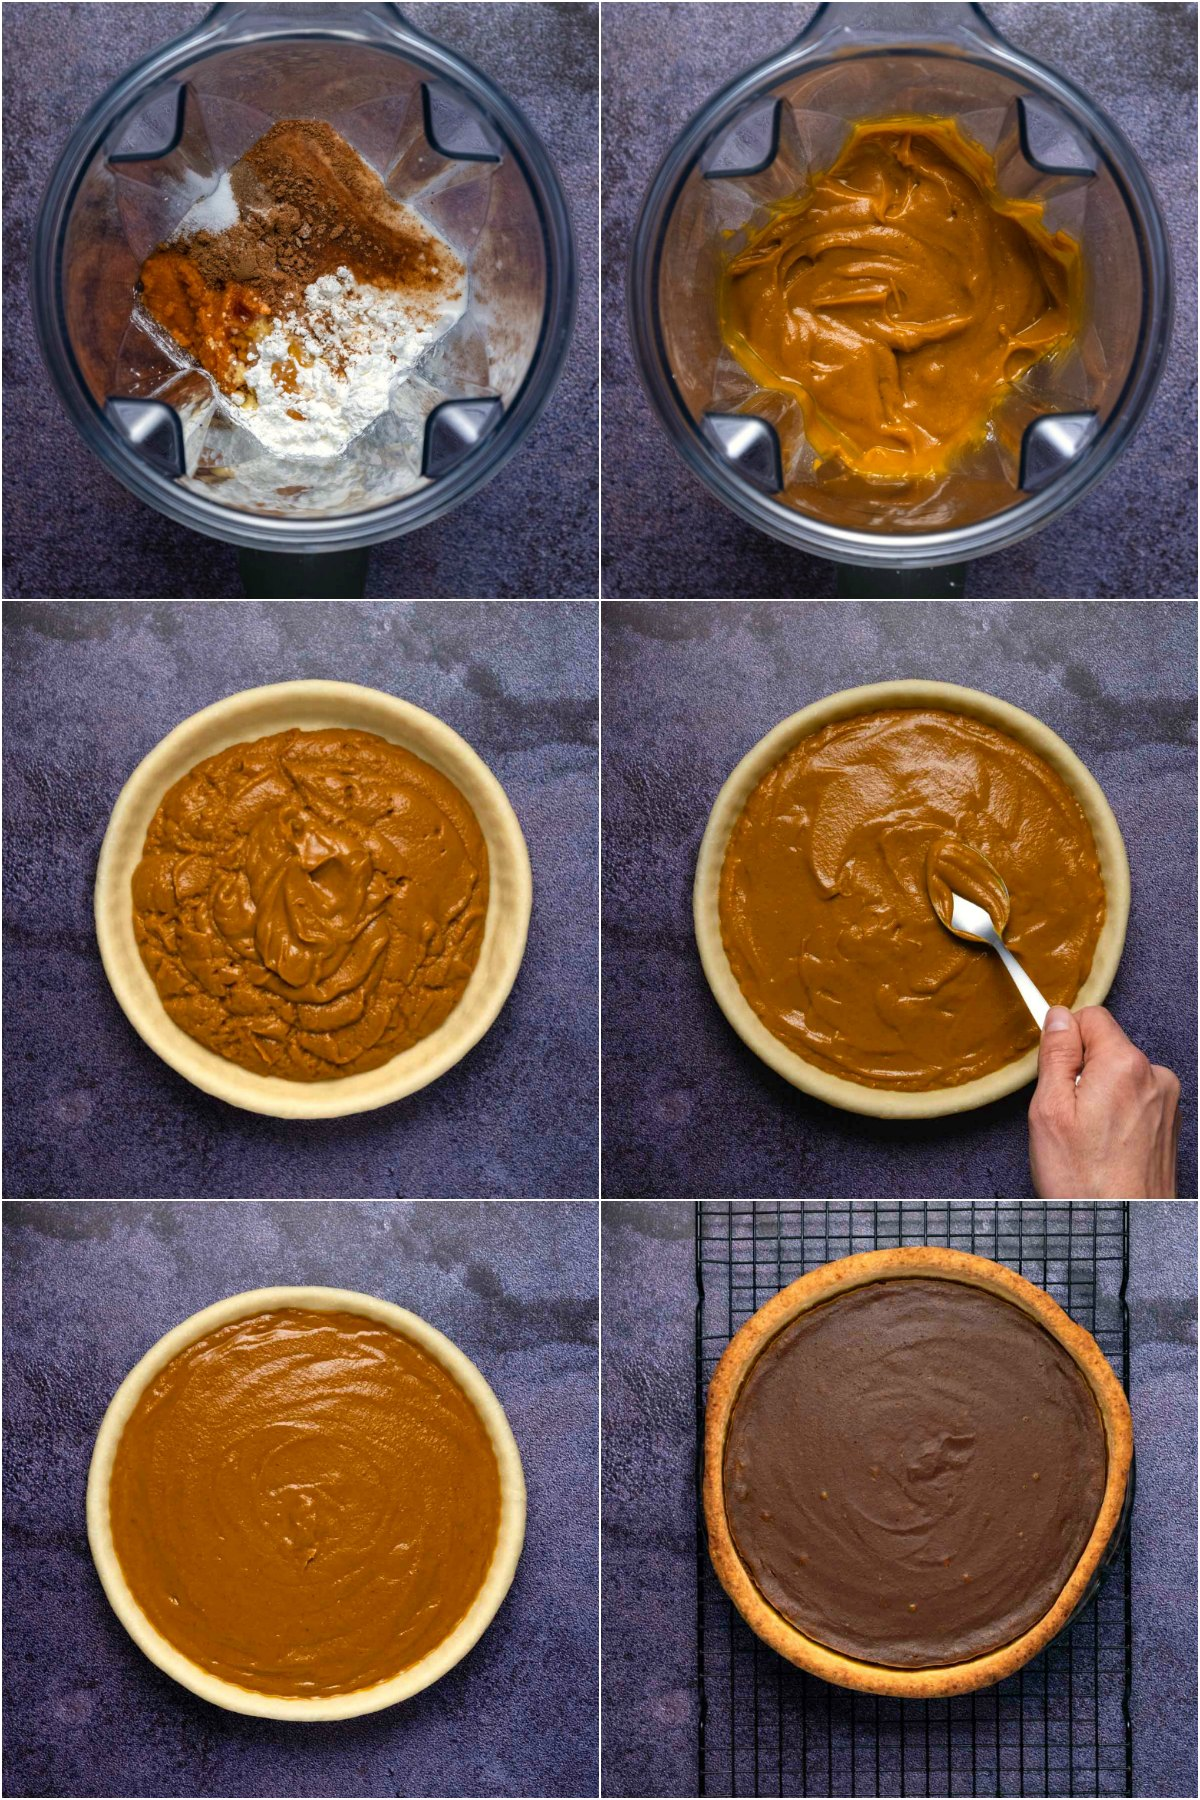 Step by step process photo collage of making vegan pumpkin pie.